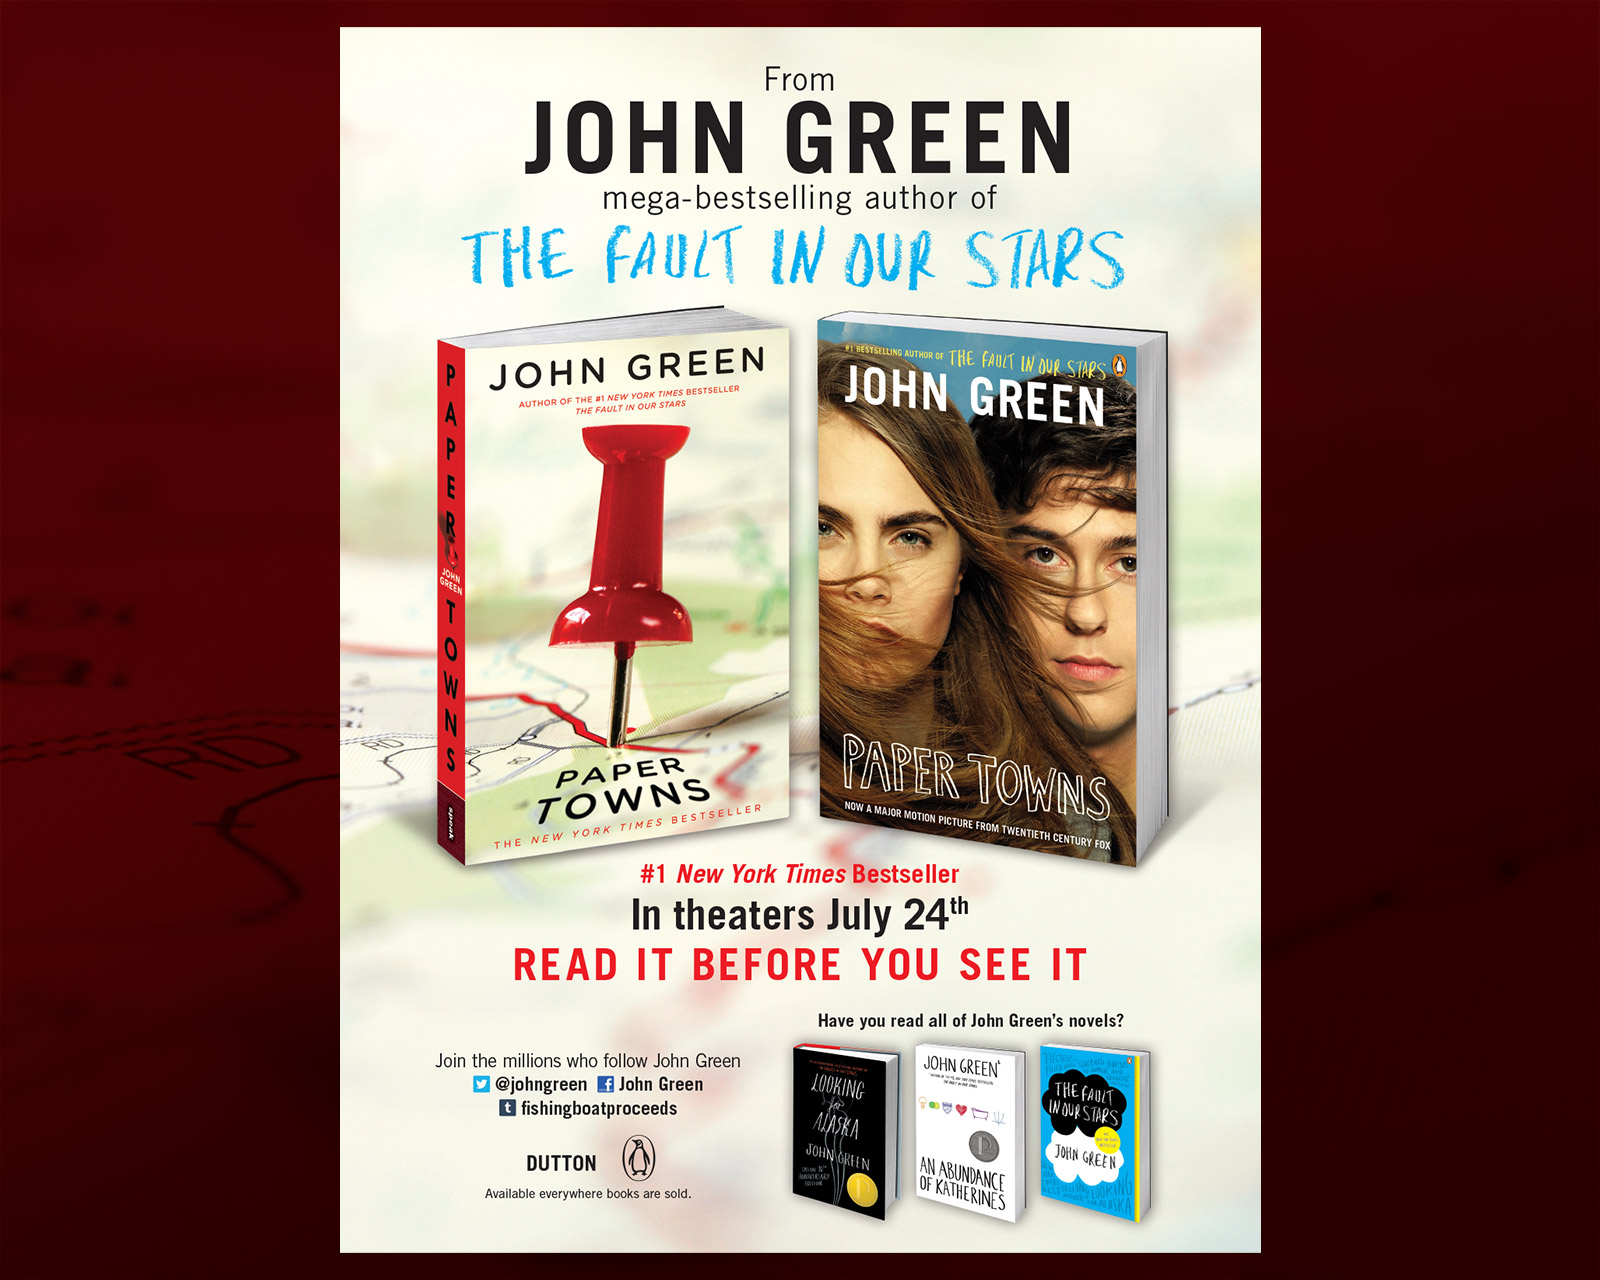 John Green - Paper Towns (movie tie-in edition) - Entertainment Weekly